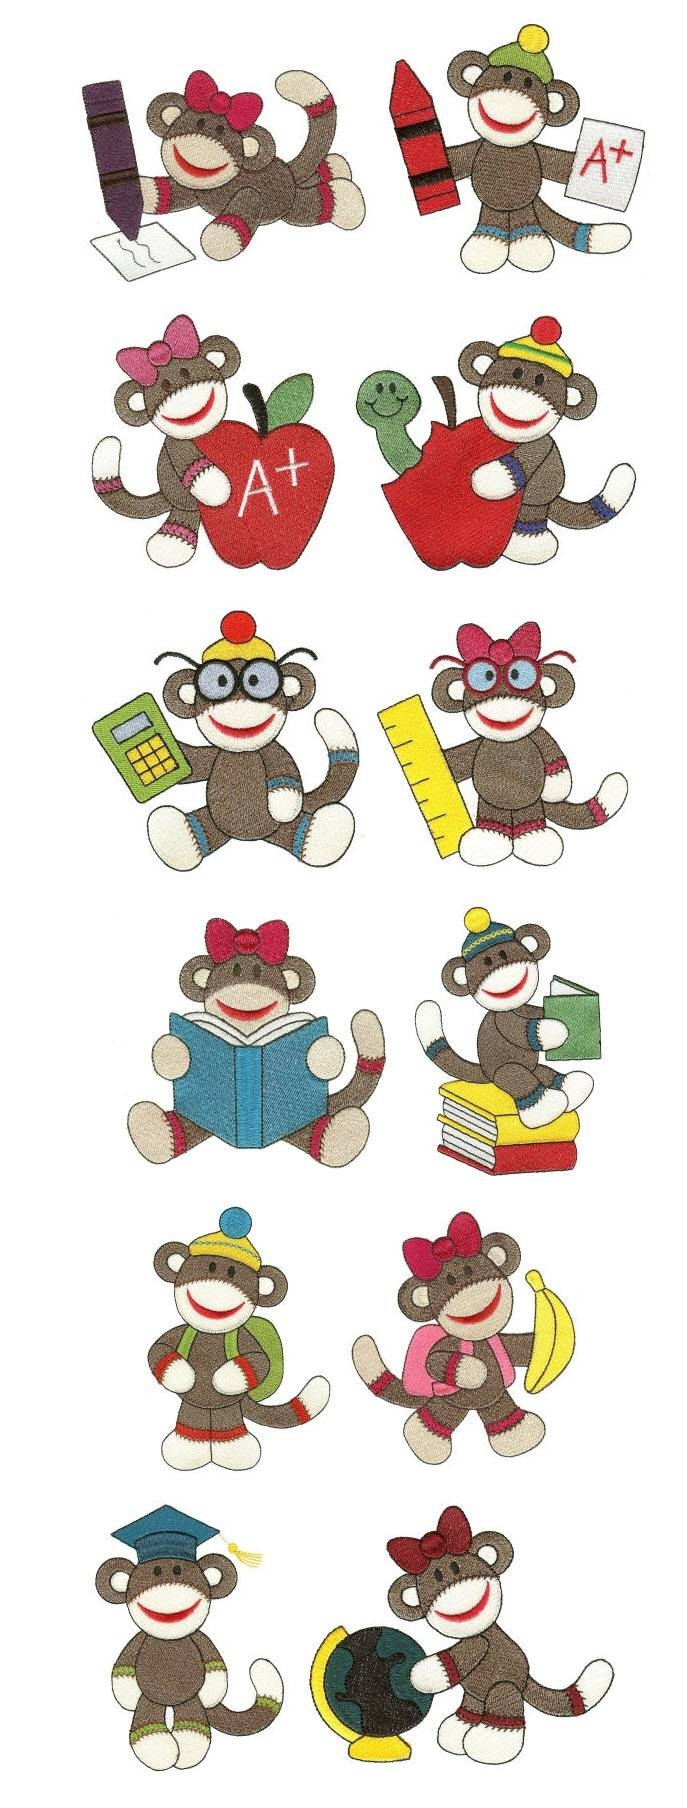 151 Best Kids – Monkeys Images On Pinterest | Monkeys, Wrapping Regarding Most Up To Date Sock Monkey Wall Art (View 3 of 30)